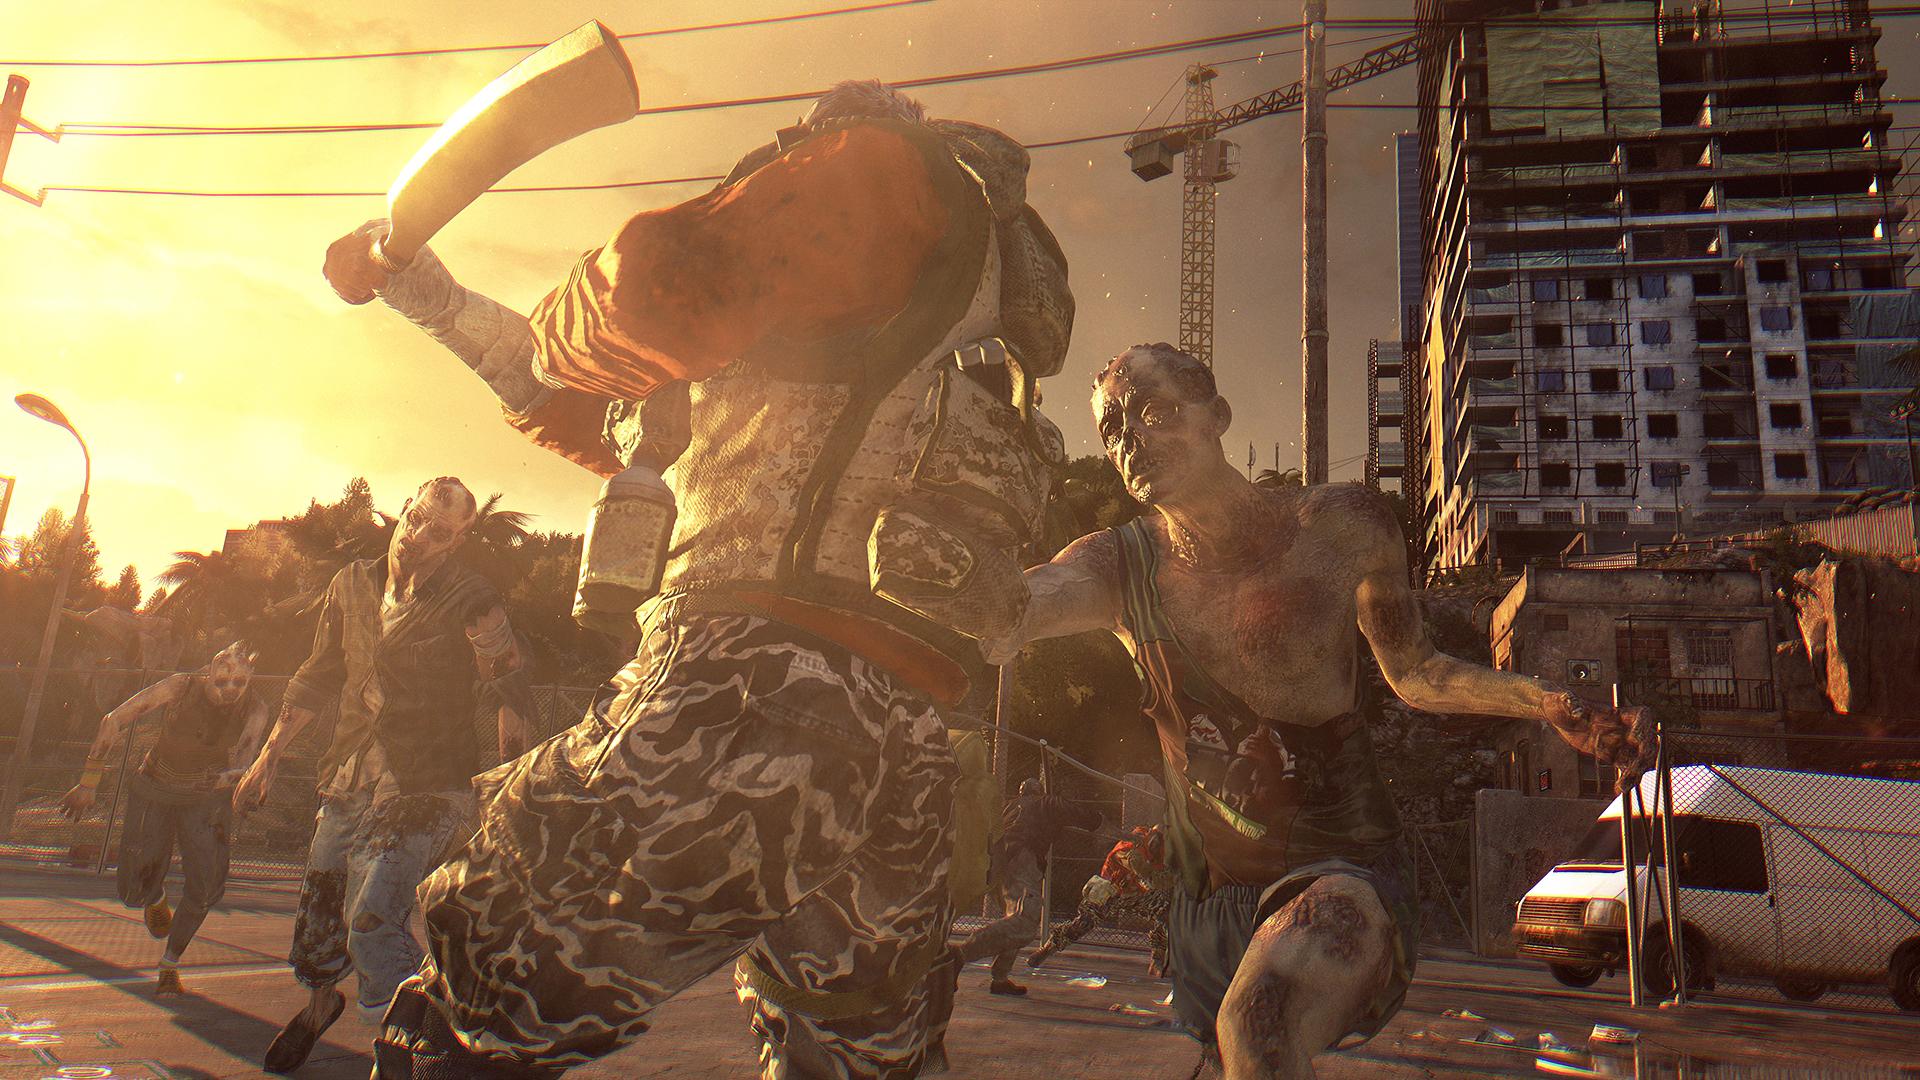 Dying Light: Bad Blood is standalone multiplayer expansion about alliances and betrayal